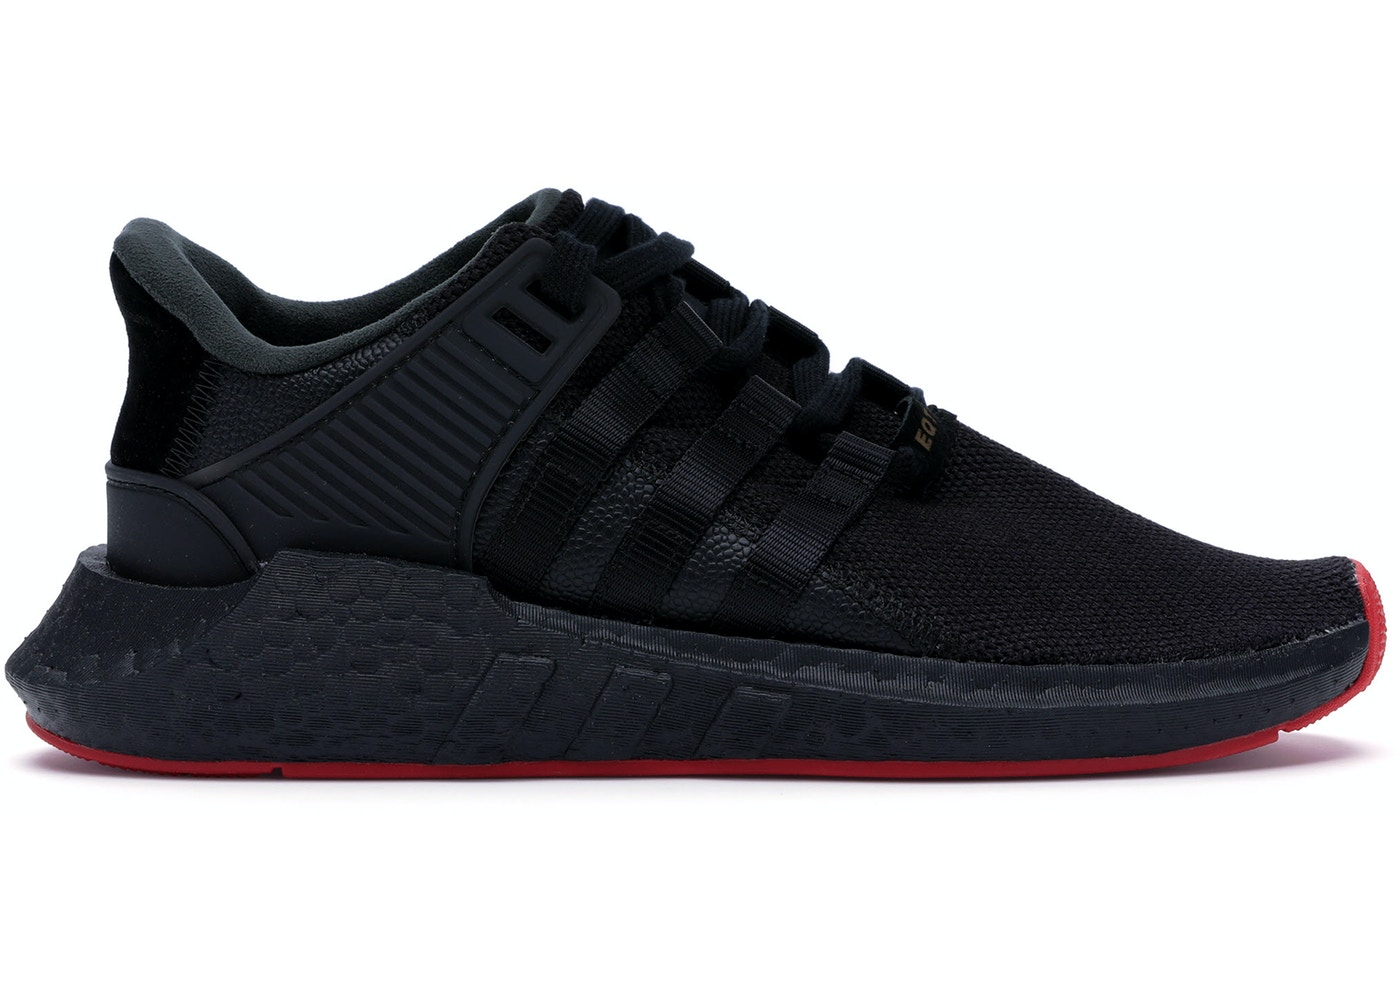 new concept 1dfc0 53a66 adidas EQT Support 9317 Red Carpet Pack Black - CQ2394